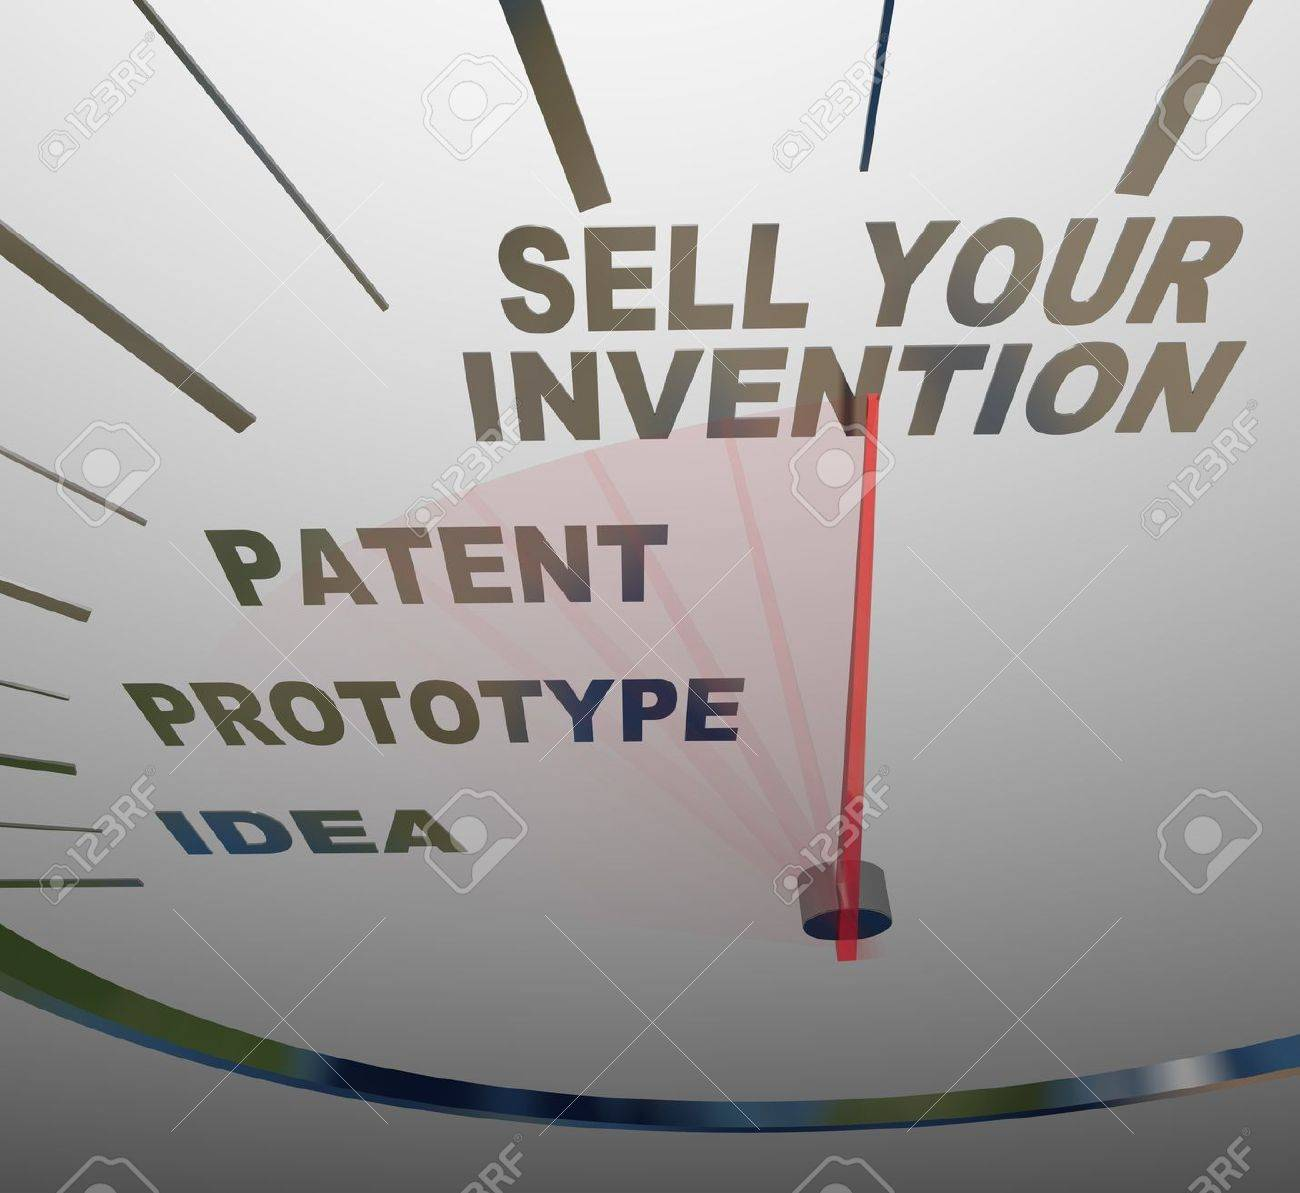 How to sell your invention